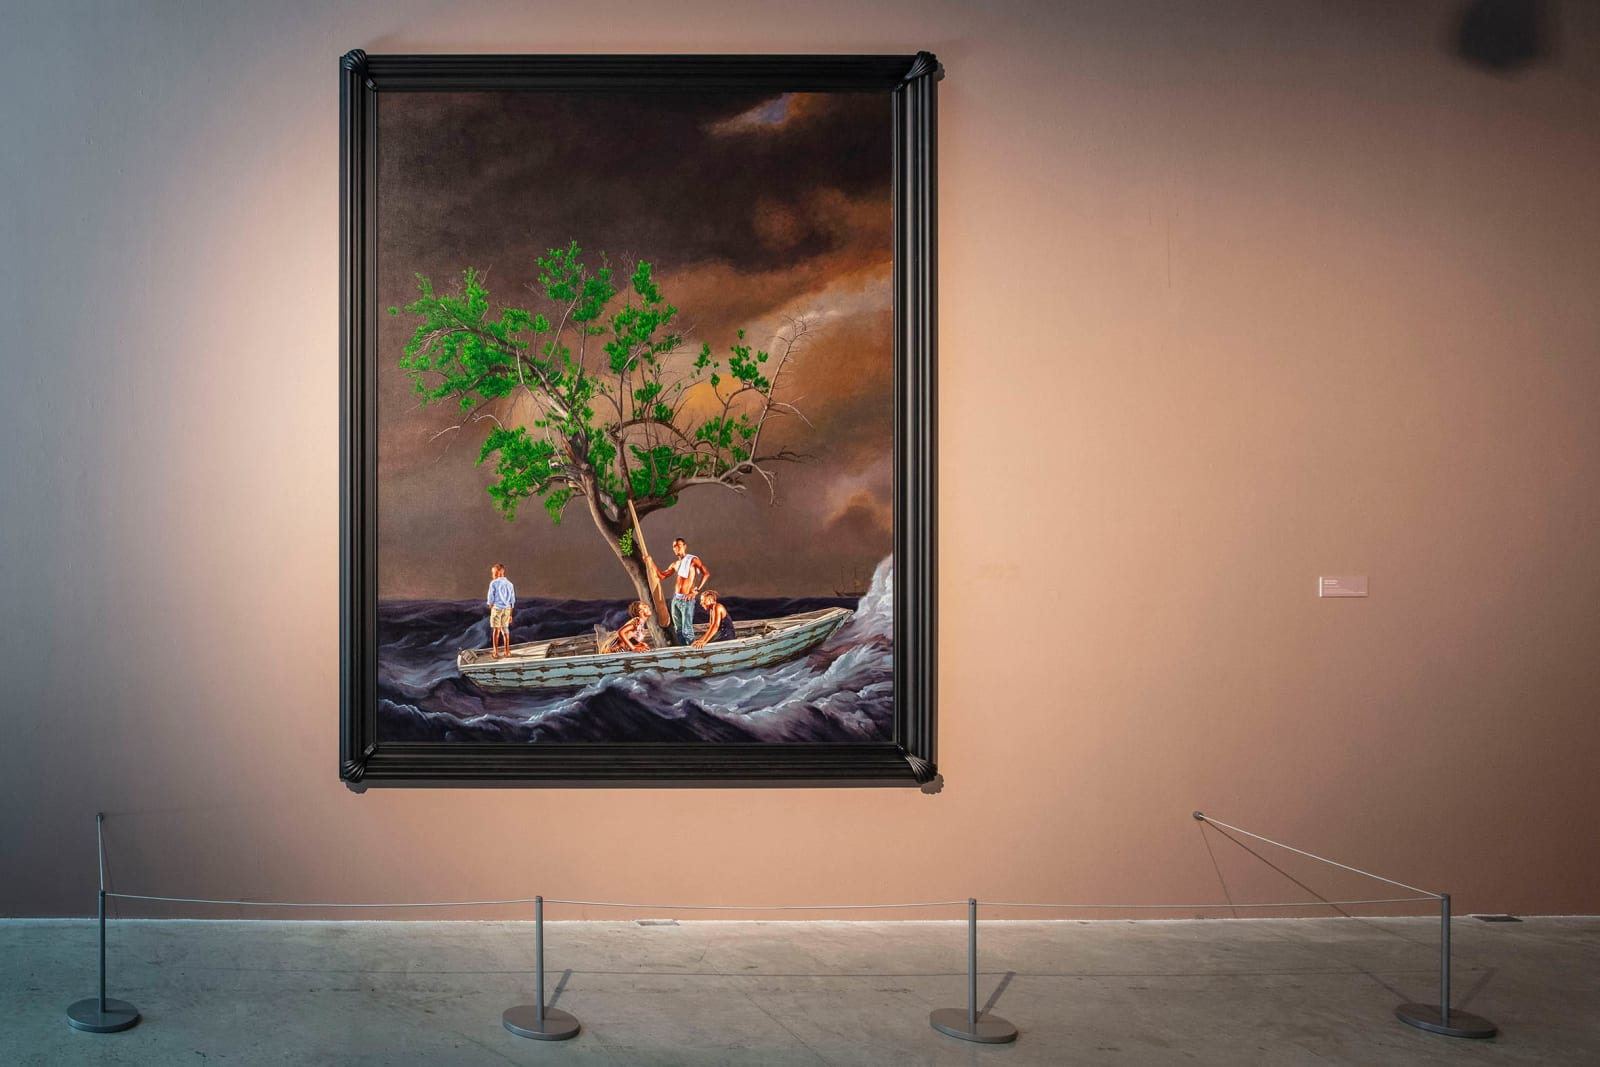 <p>Kehinde Wiley, 'Ship of Fools', 2017, Collection of the National Maritime Museum, London, on view in 'Kehinde Wiley: Ship of Fools', The Levinsky Gallery, The Box, Plymouth (2020). </p>